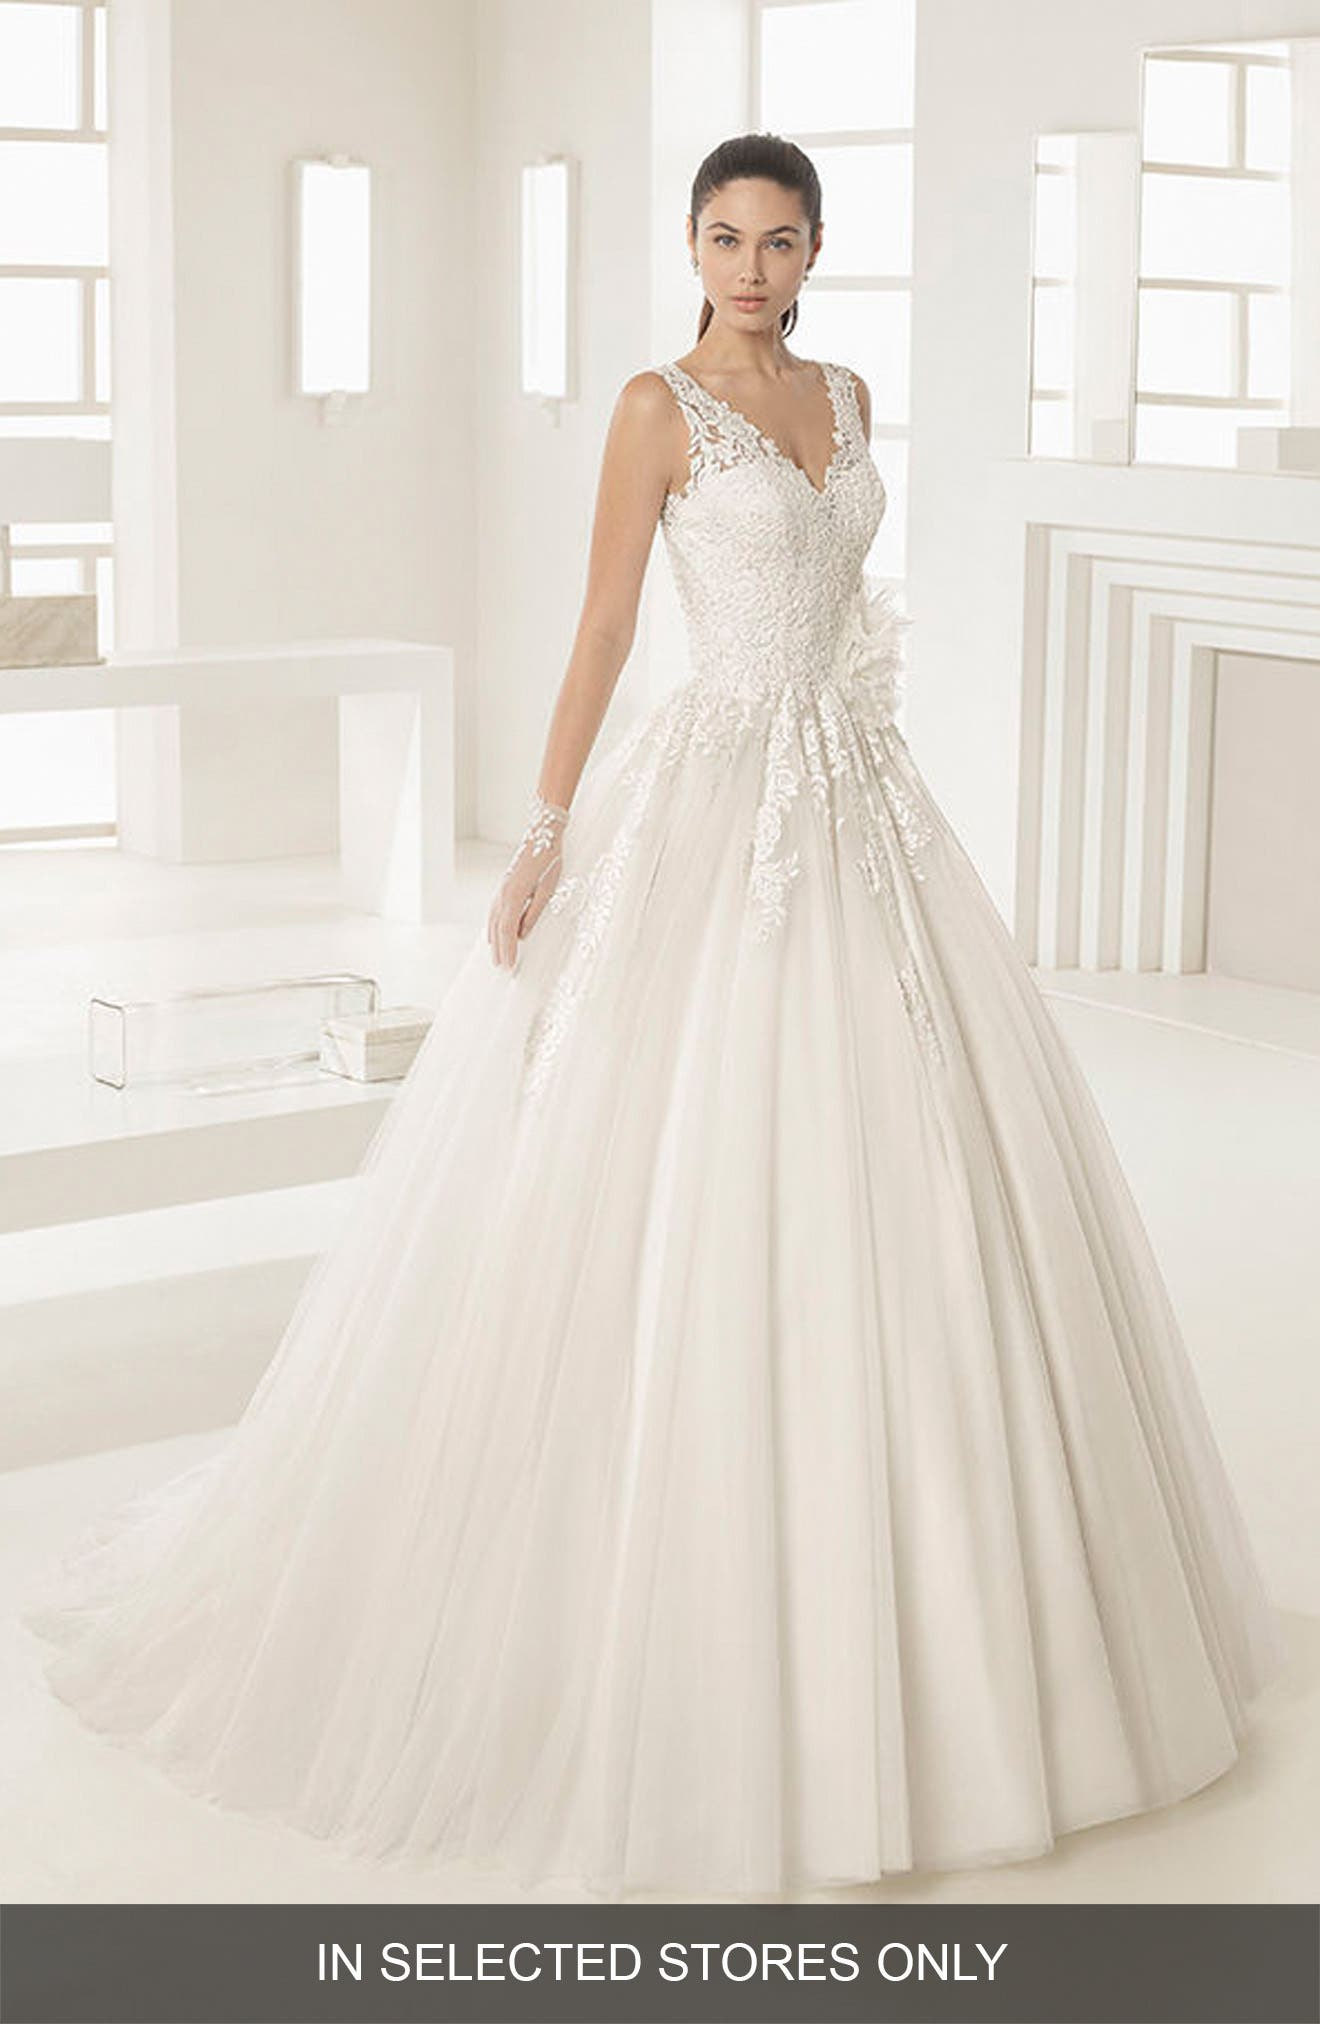 Alternate Image 1 Selected - Rosa Clara Octubre V-Neck Lace & Tulle Ballgown